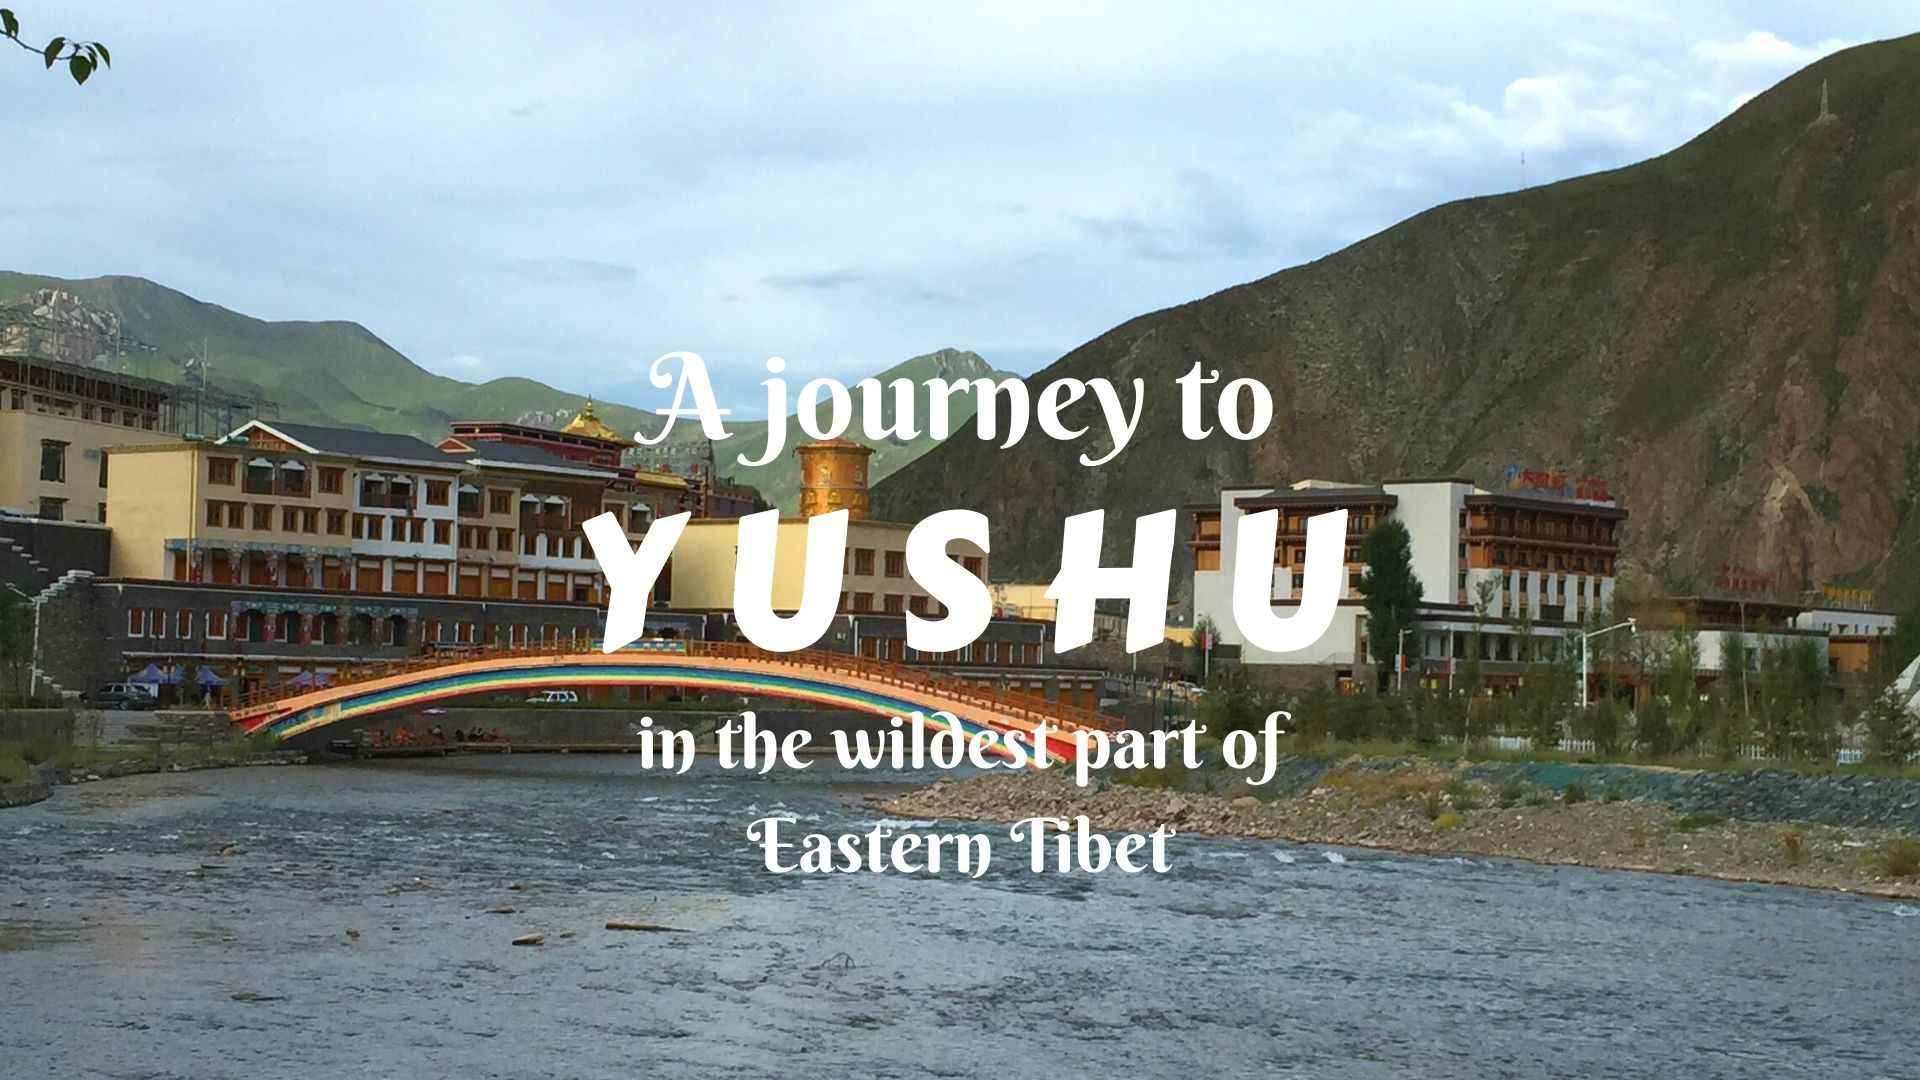 A journey to Yushu, in the wildest part of Eastern Tibet